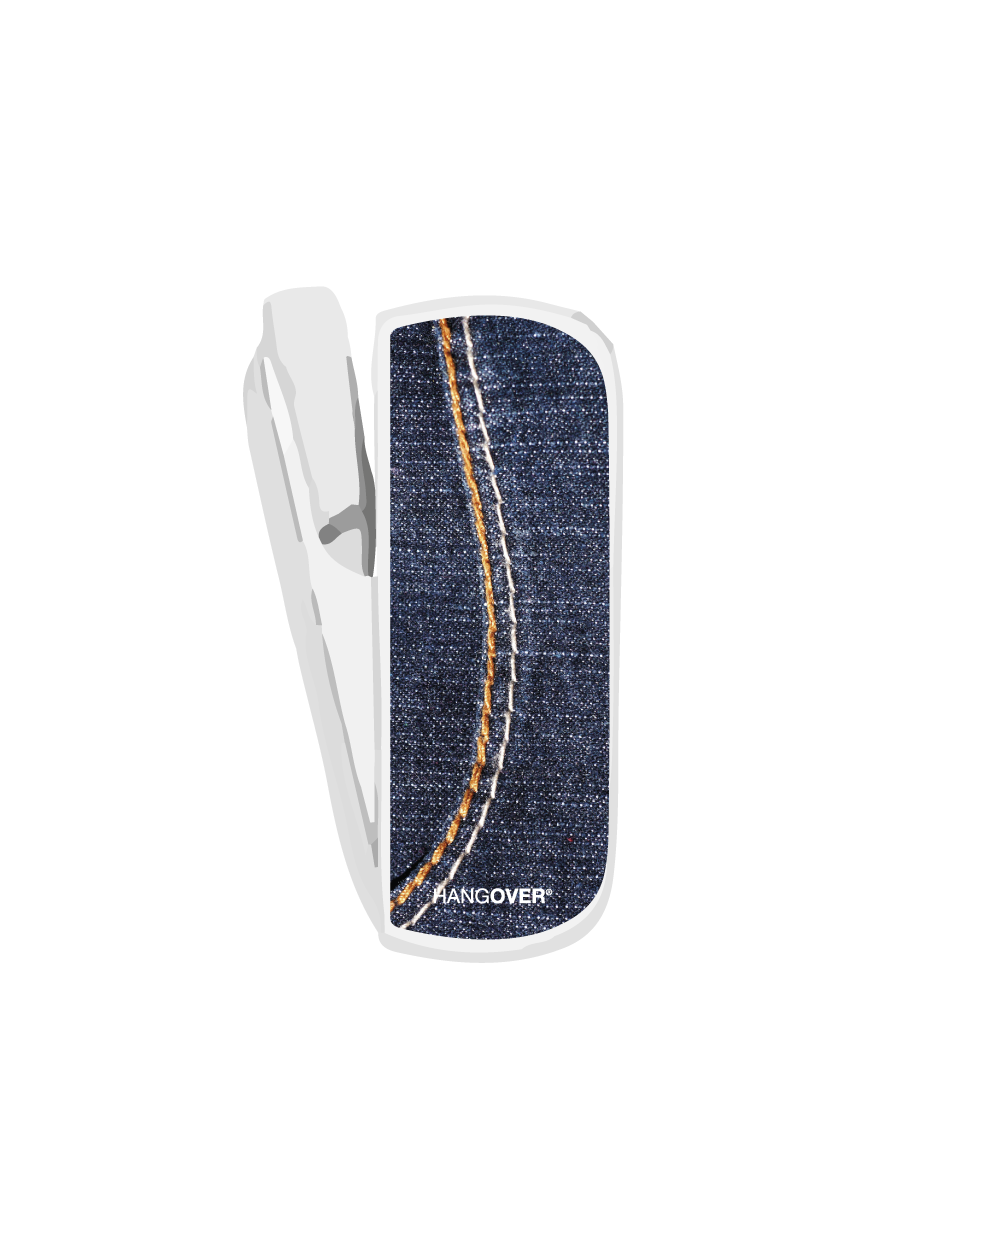 Jeans - SmartSkin in Stoffa Speciale for Iqos 3